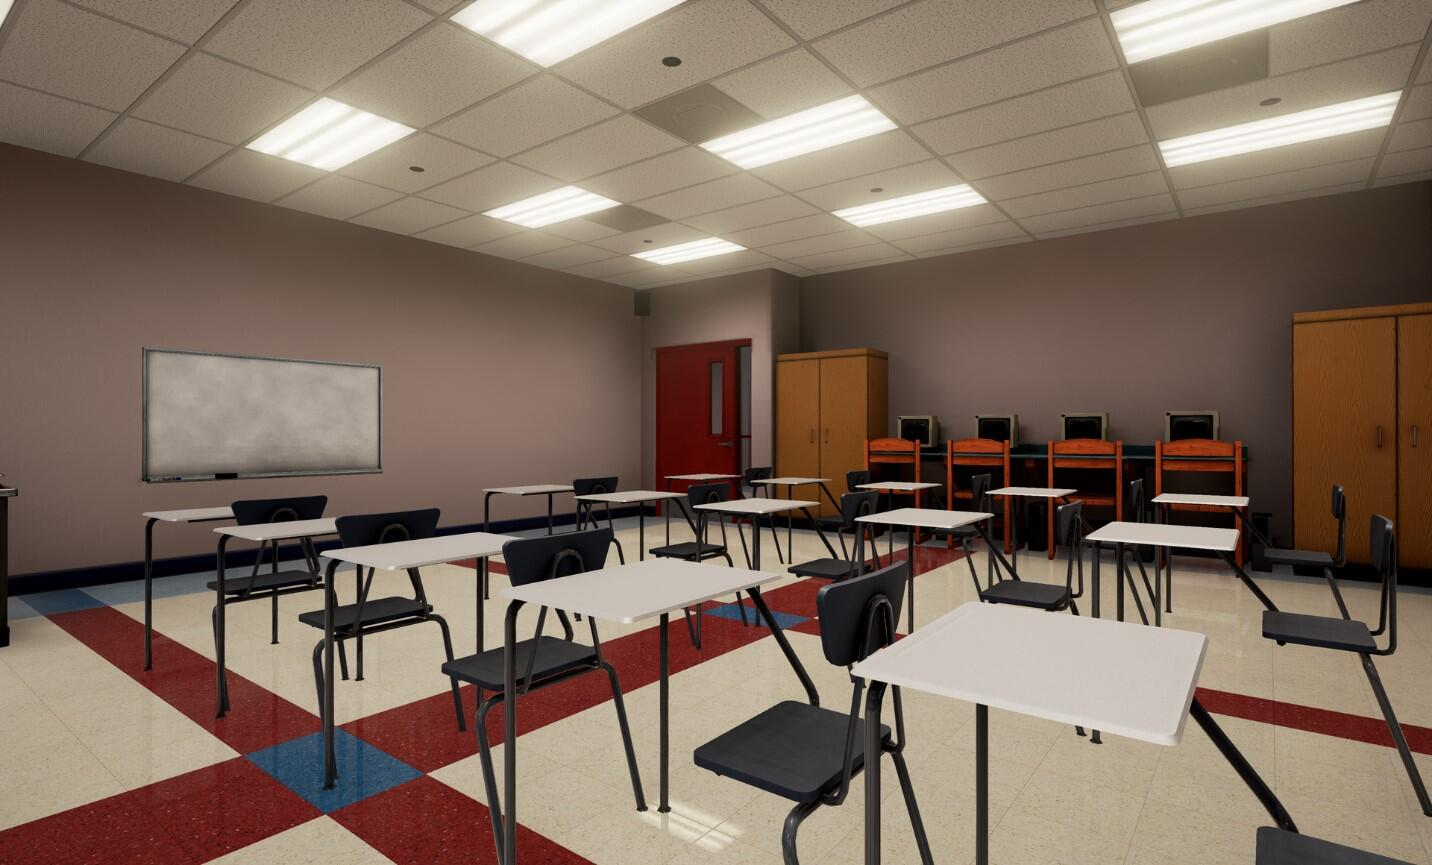 The EDGE virtual training school environment empty classroom